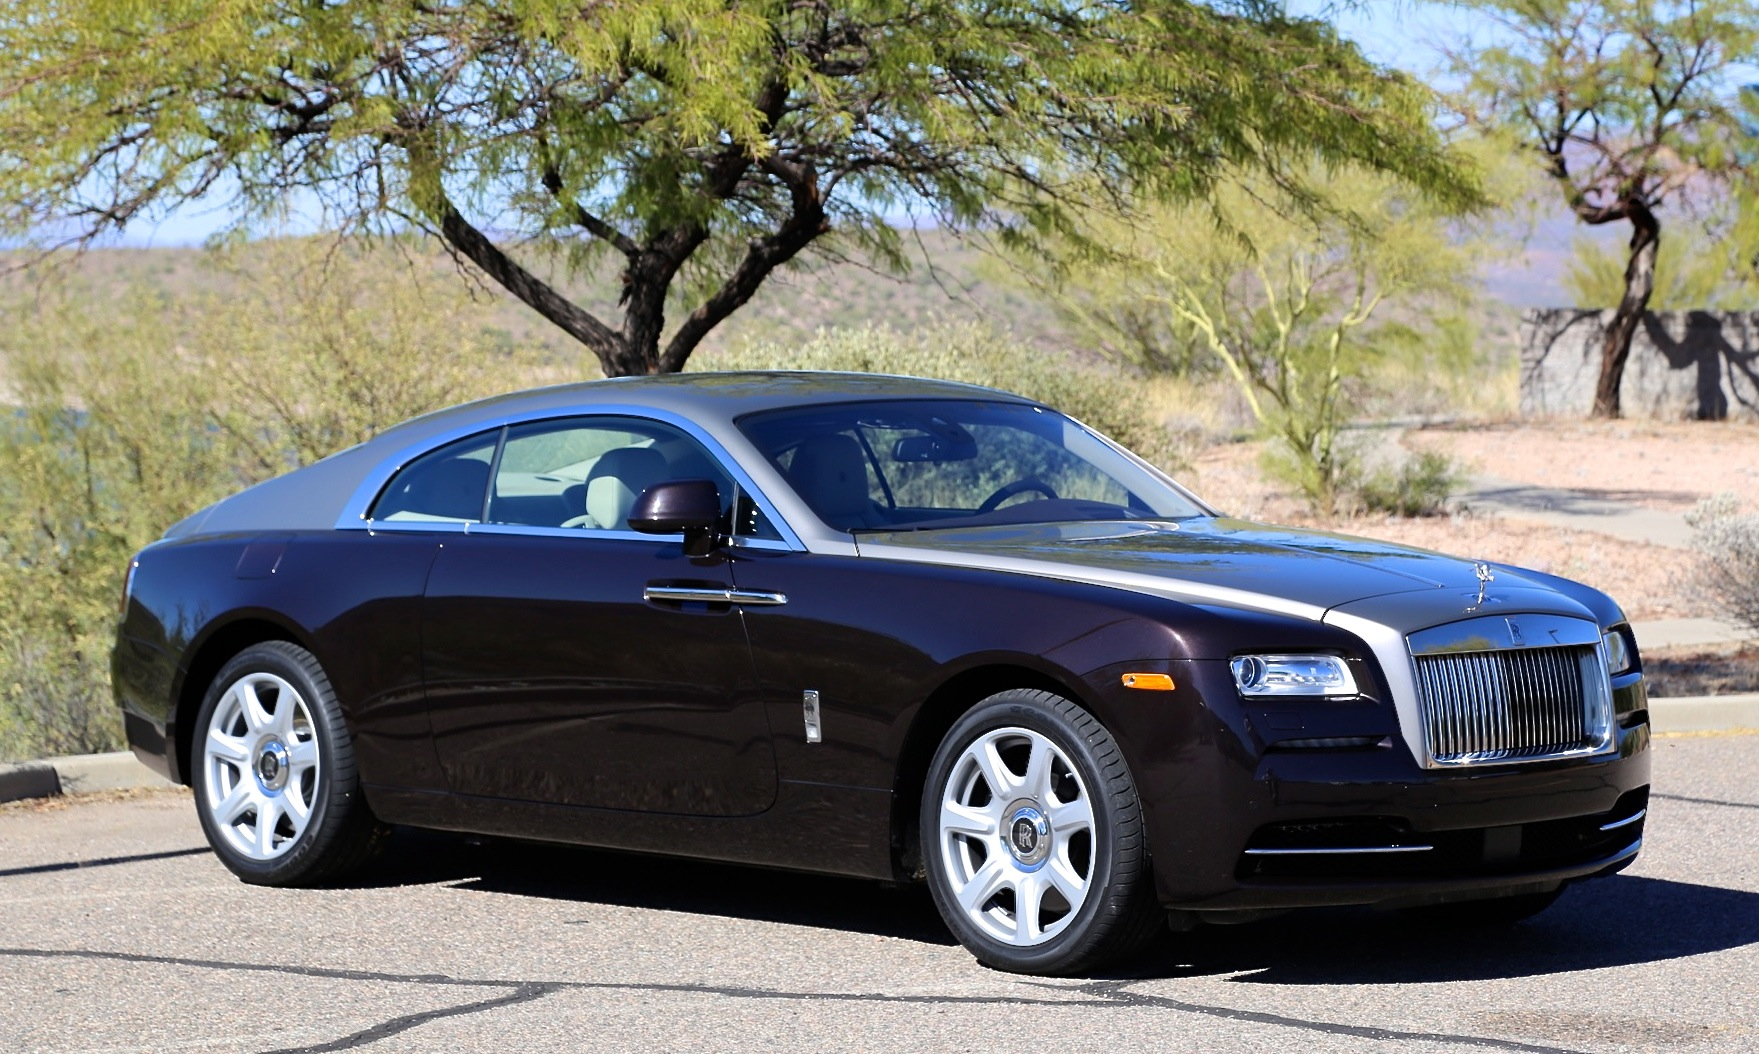 Rose City Chrysler >> 2014 Rolls-Royce Wraith Review, Ratings, Specs, Prices, and Photos - The Car Connection